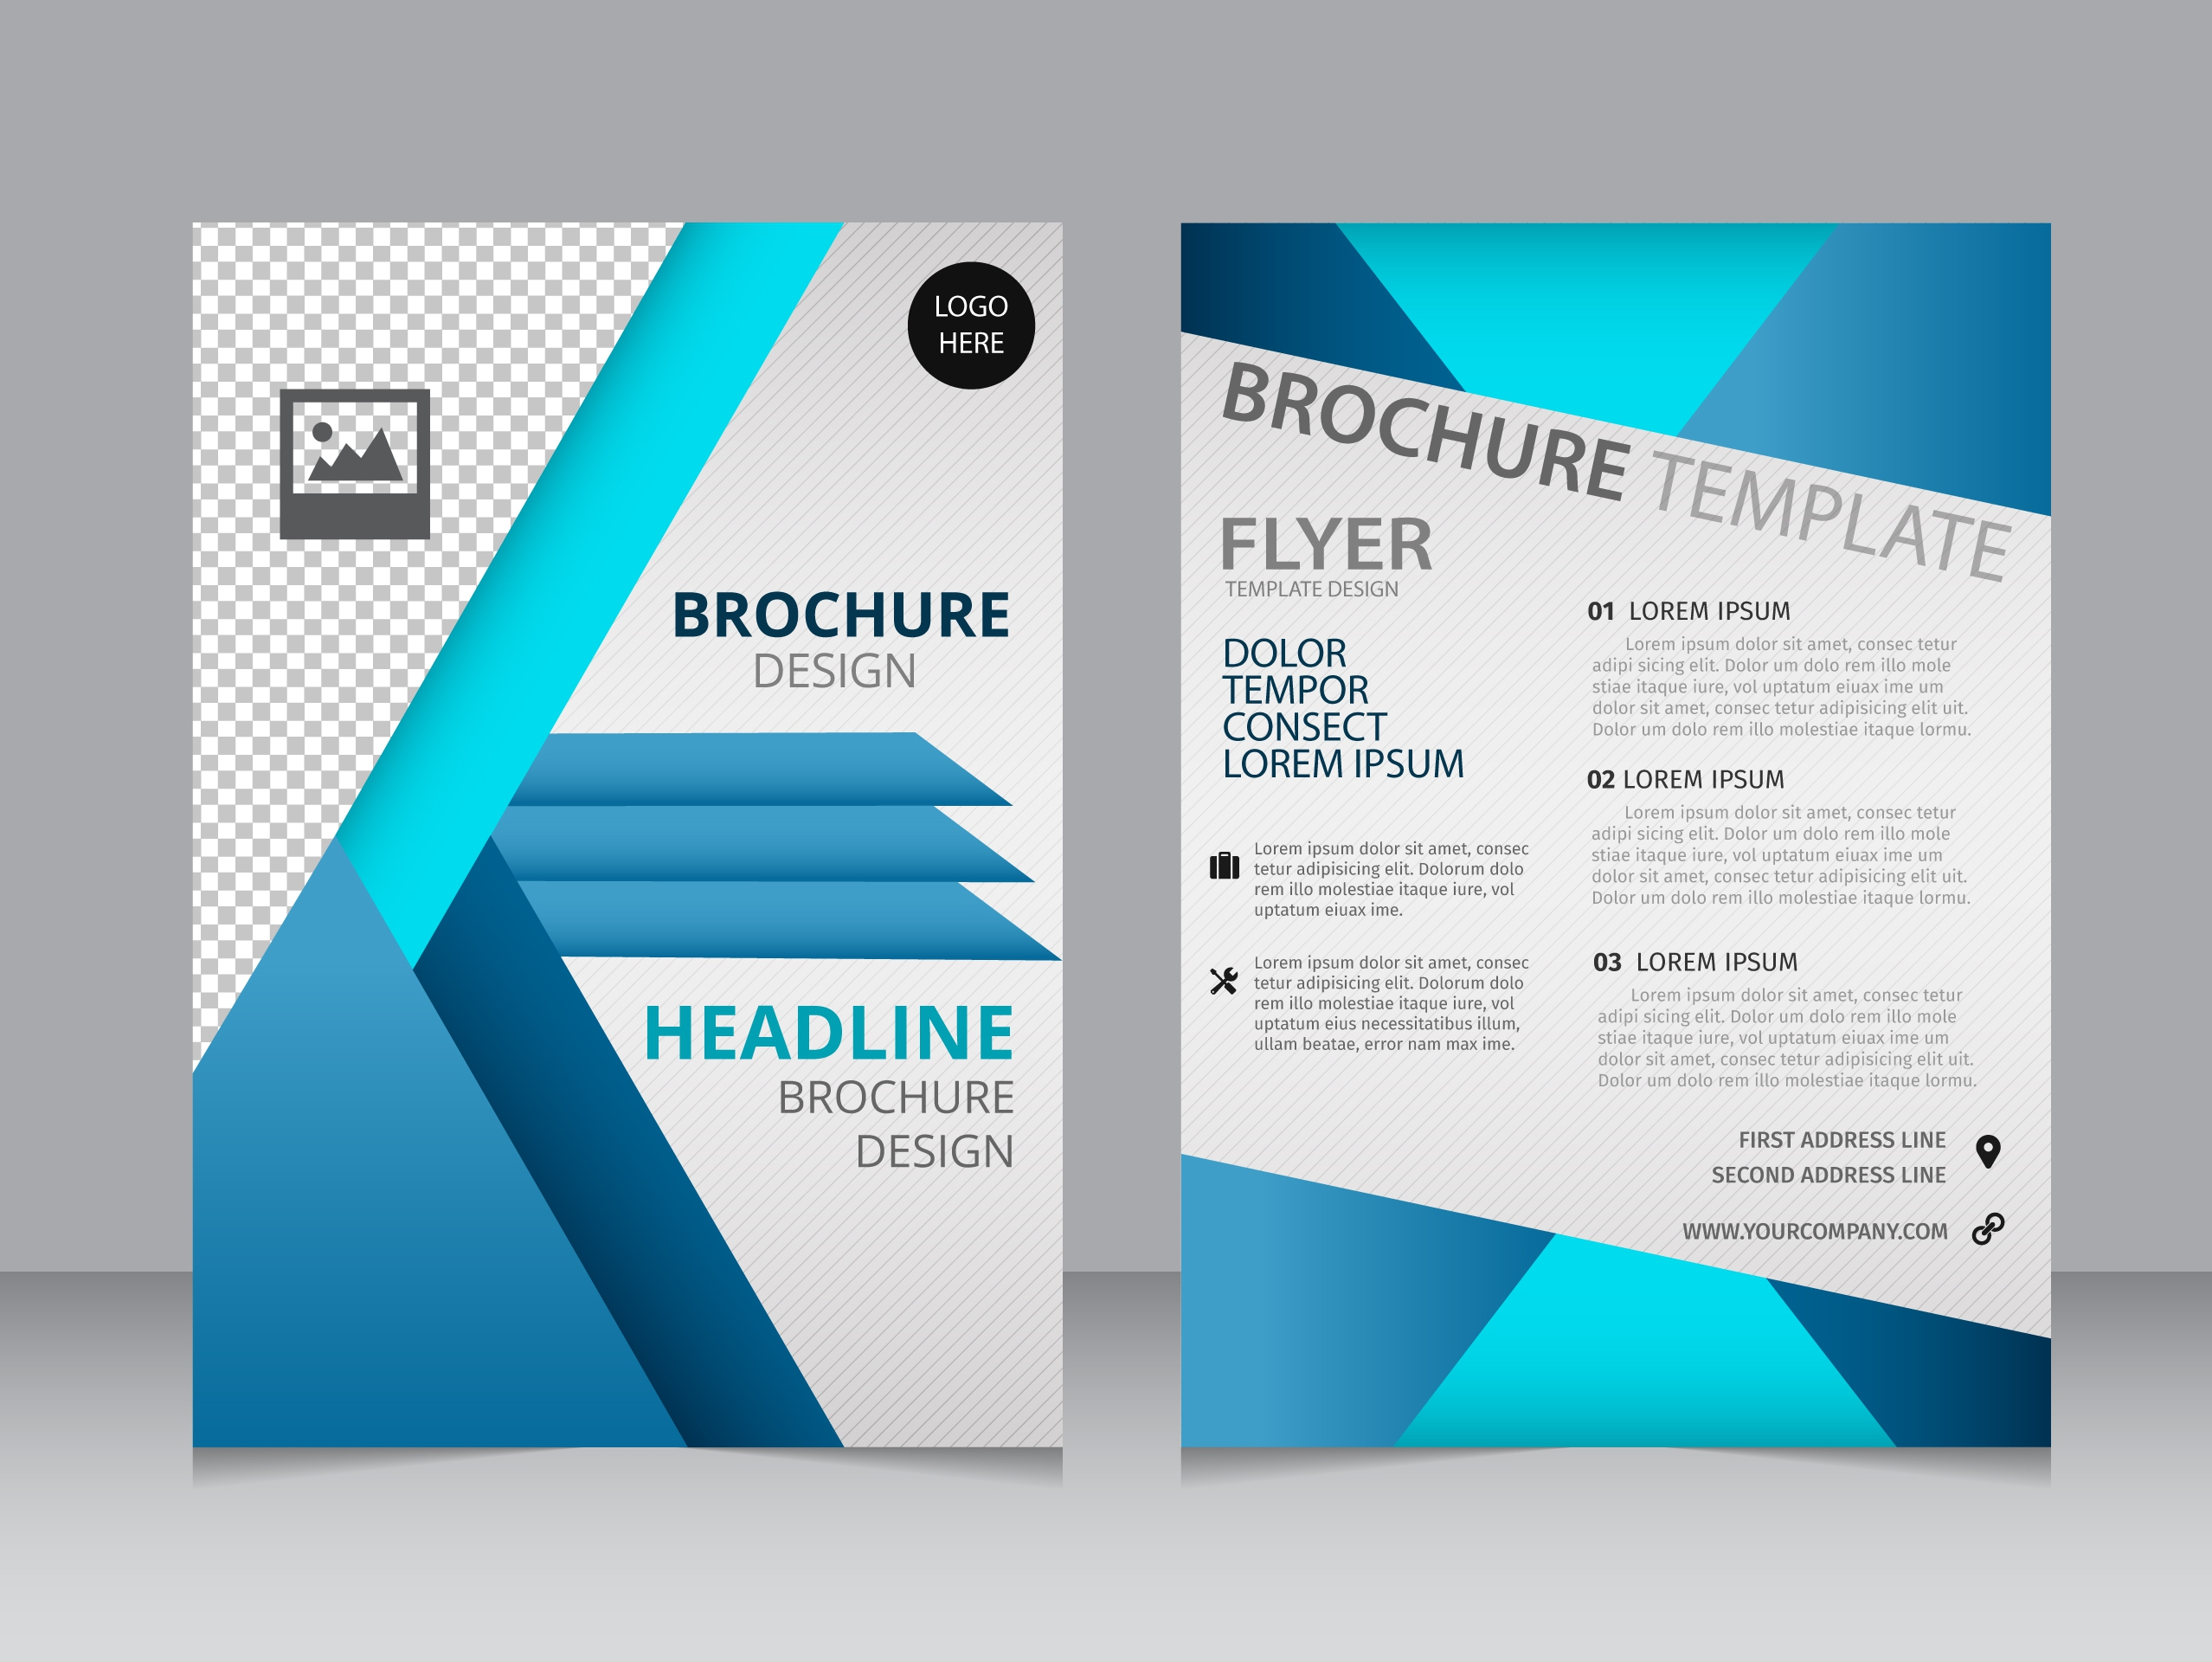 free templates for brochure design - 11 free sample travel brochure templates printable samples